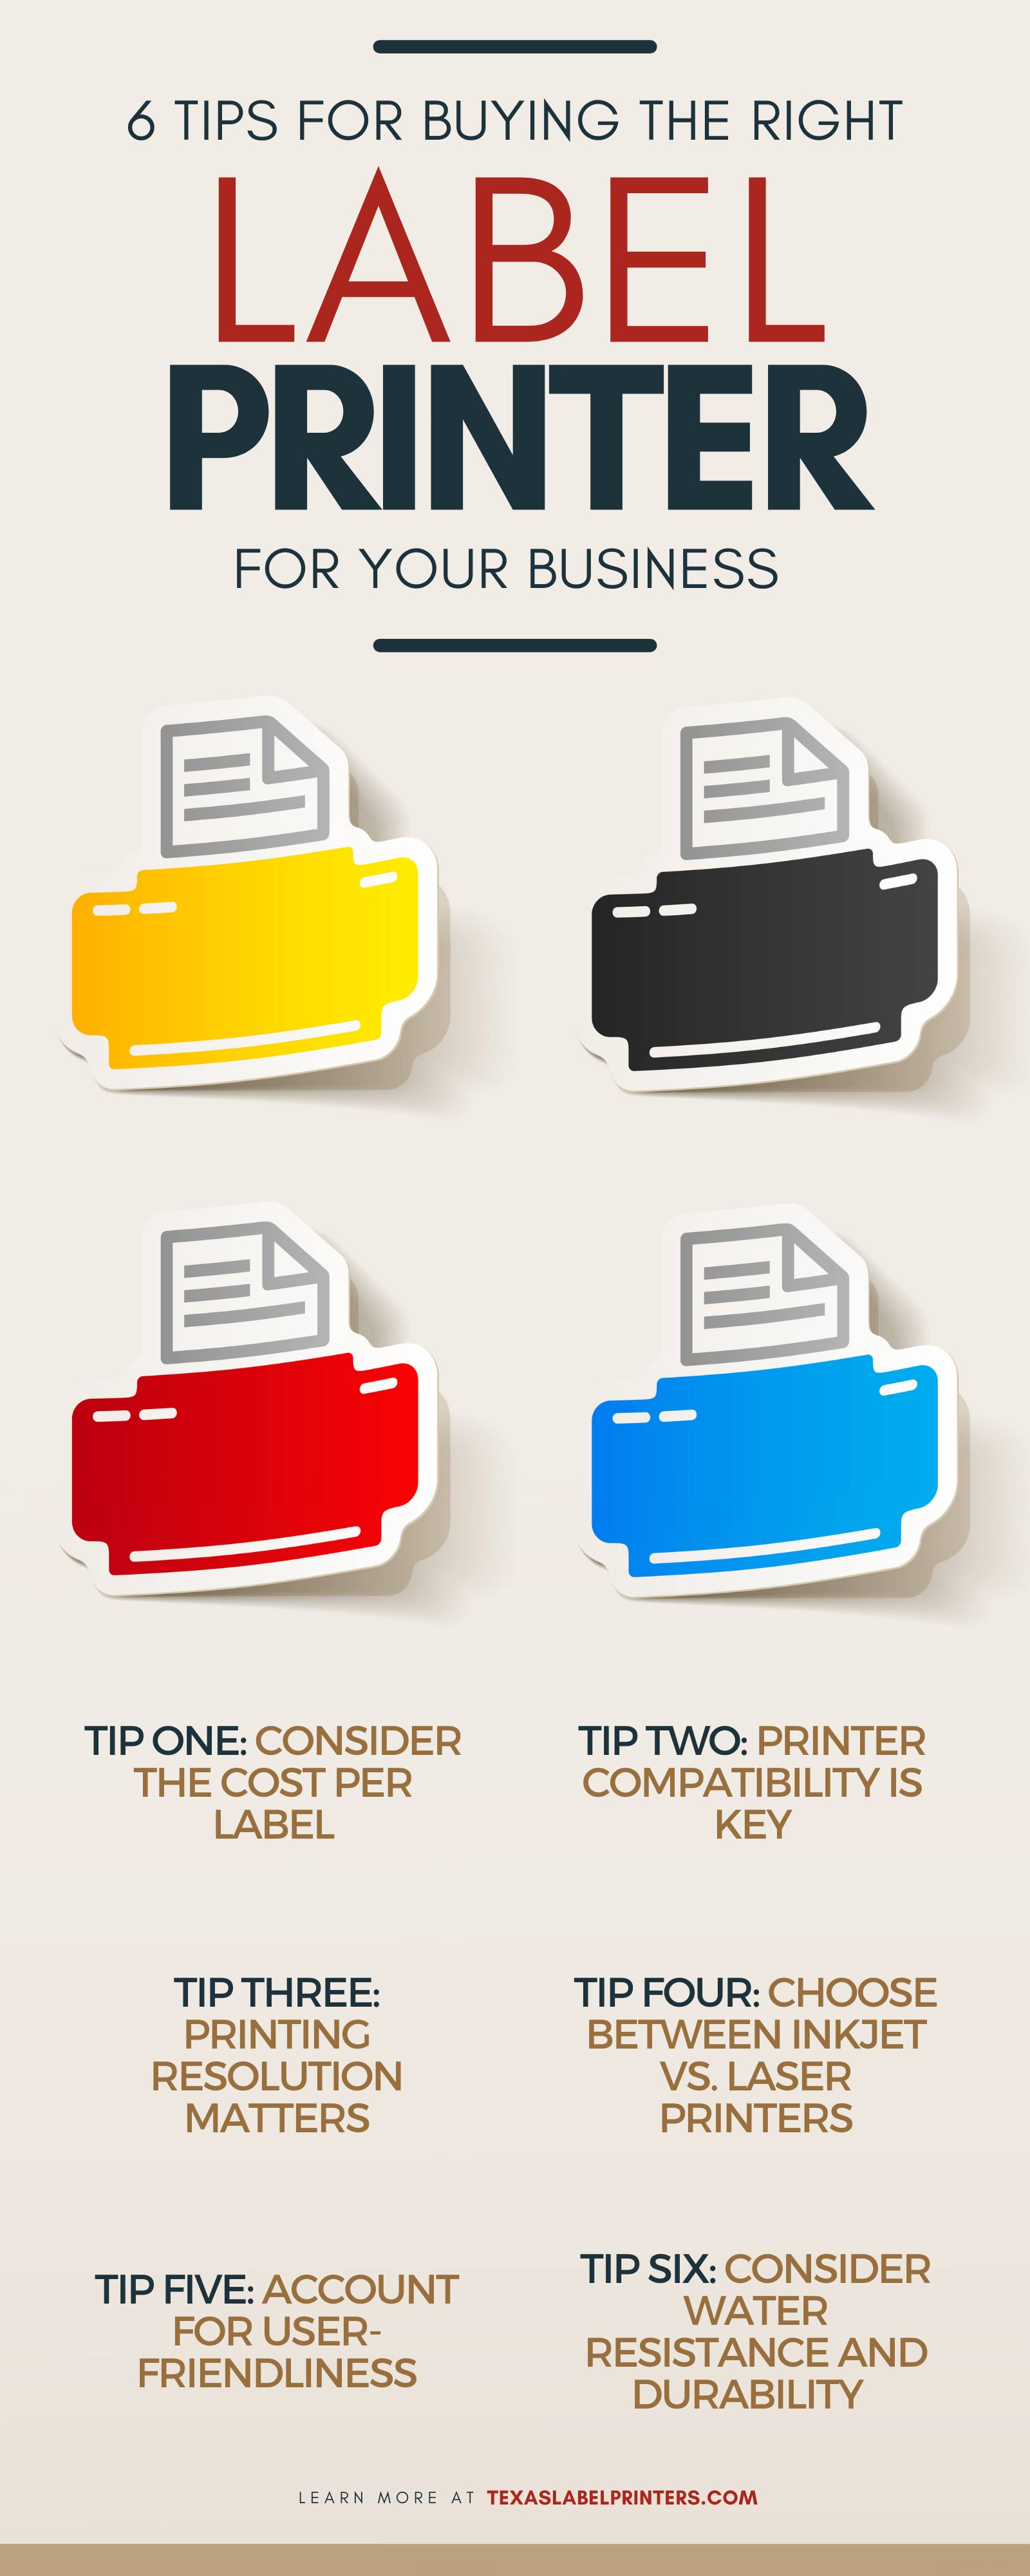 6 Tips for Buying the Right Label Printer for Your Business Infographic